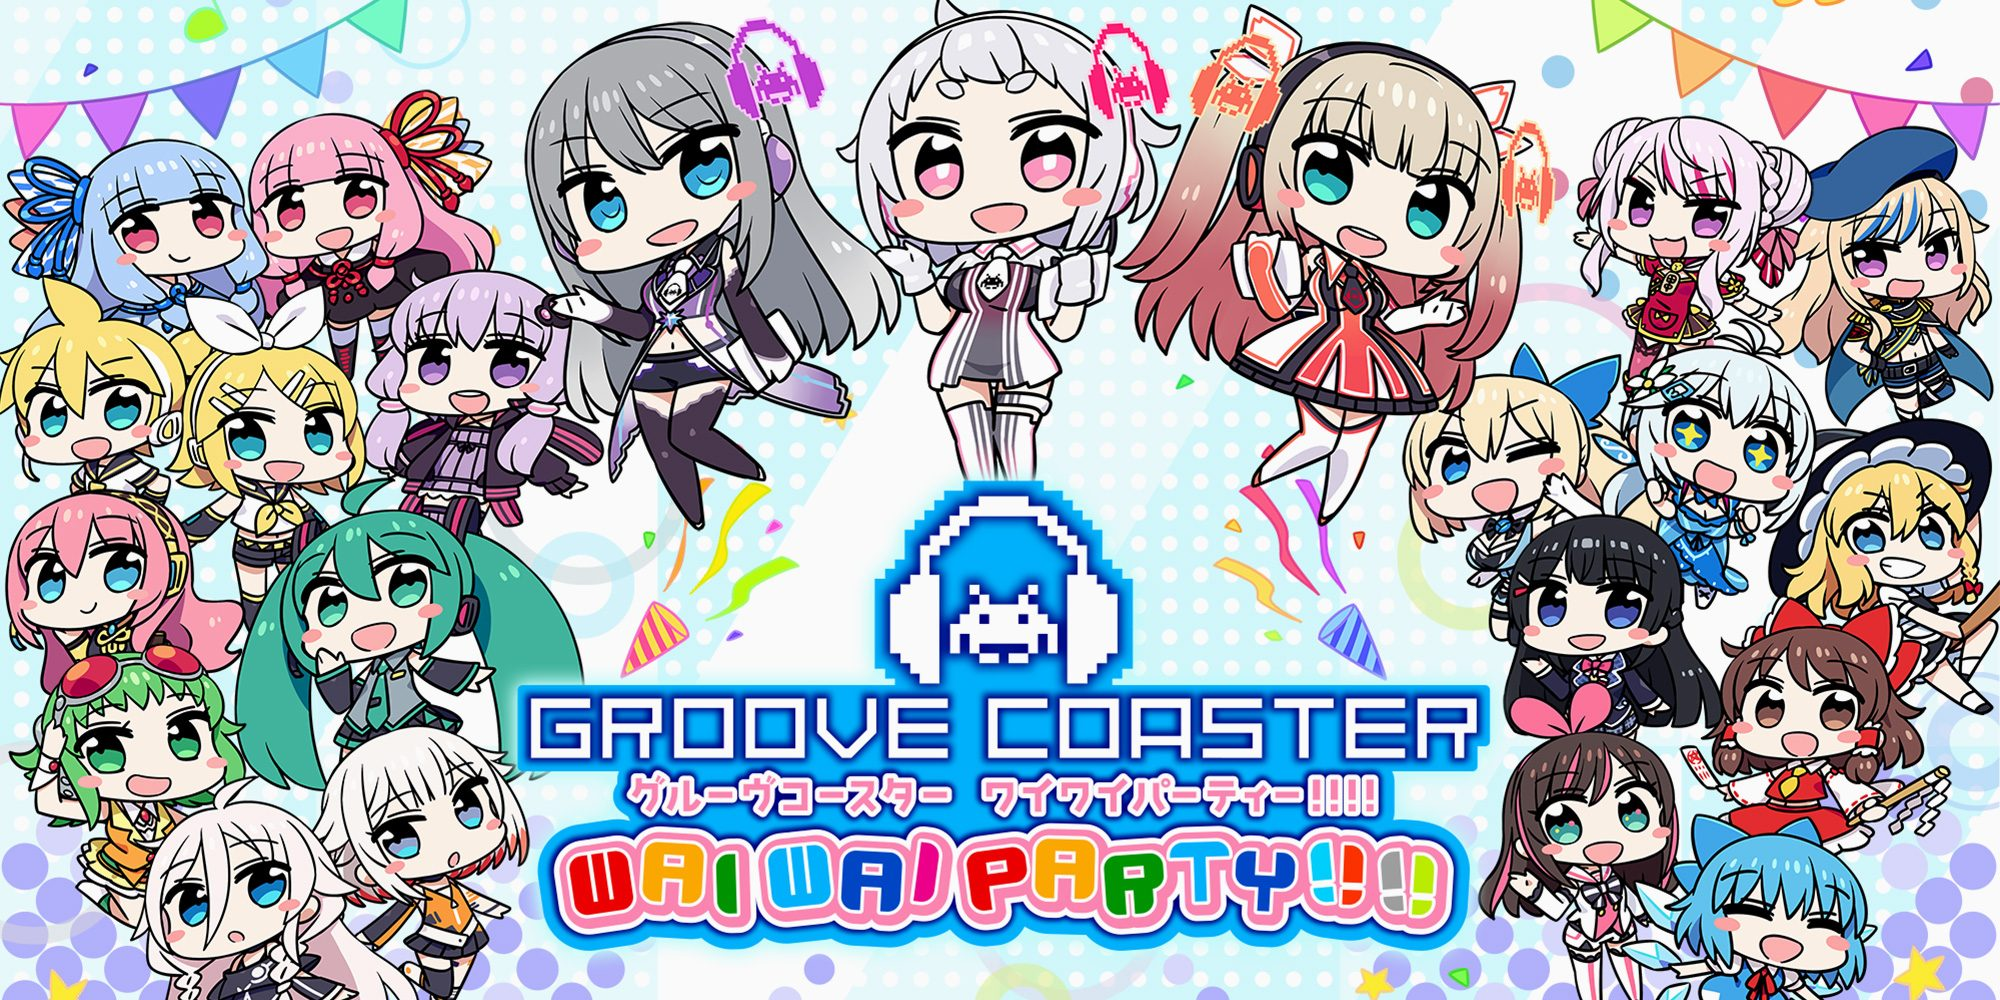 h2x1_nswitchds_groovecoasterwaiwaiparty-9149503